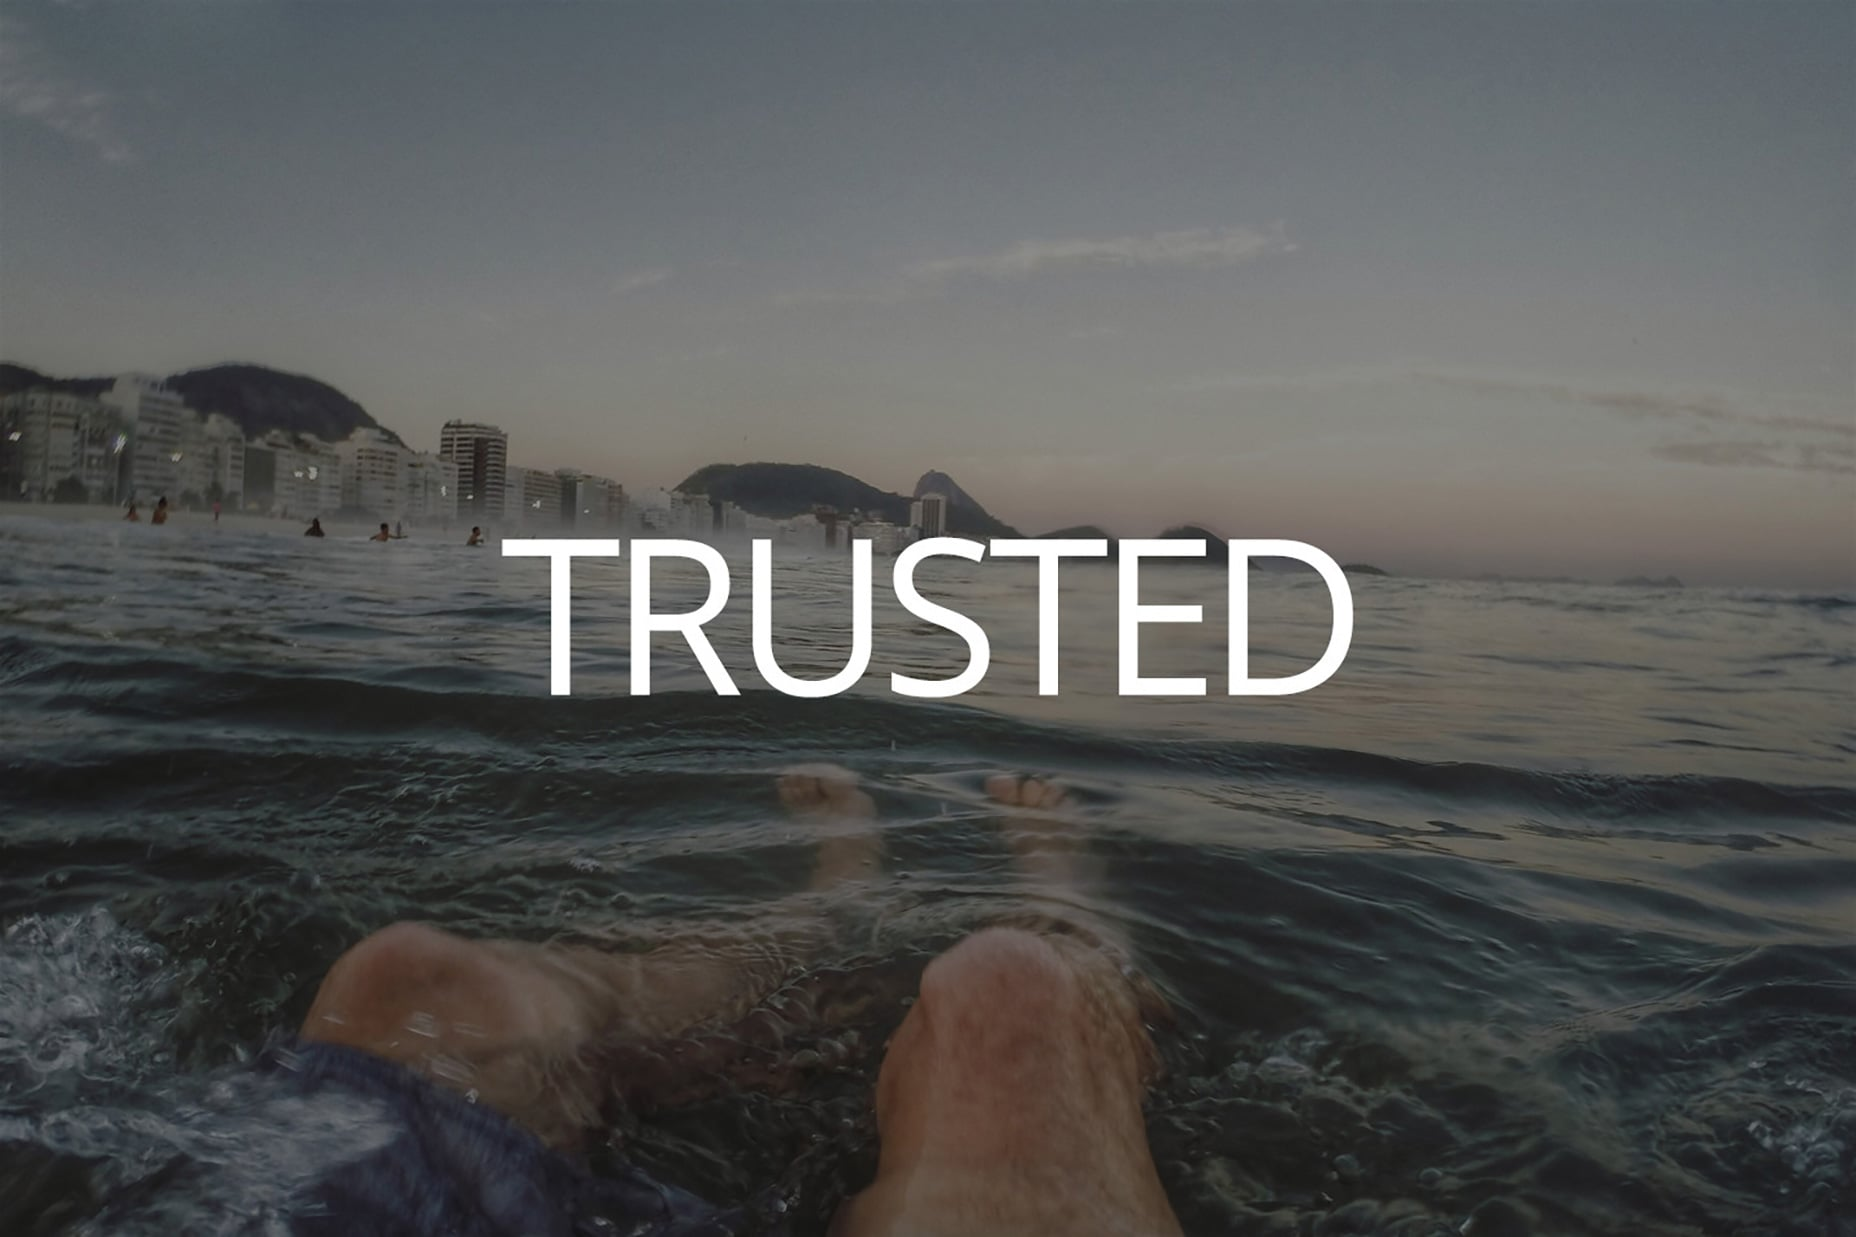 trusted-content-heading